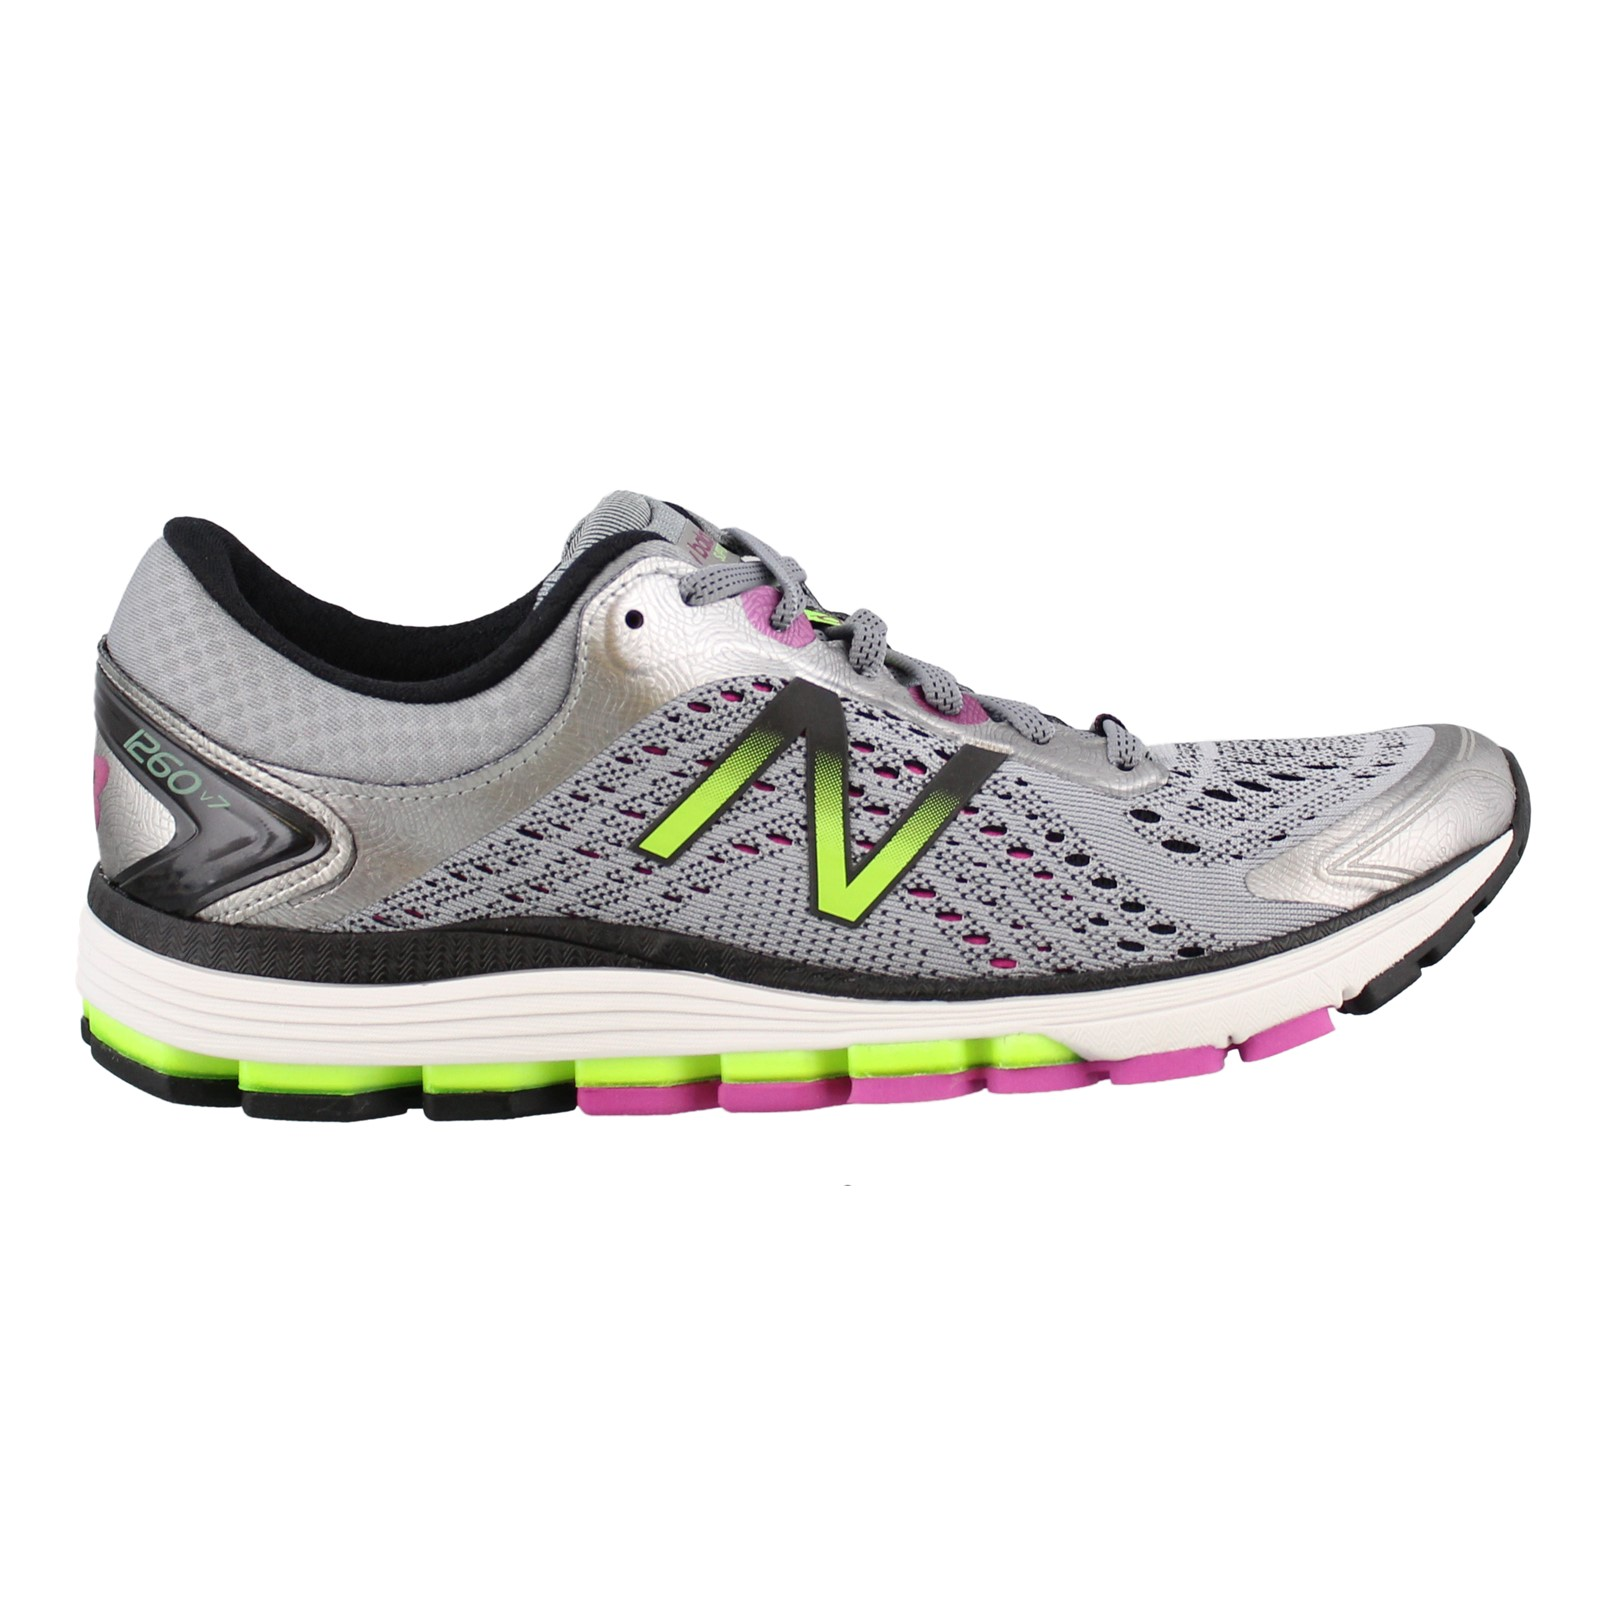 finest selection 8eca4 40356 Women's New Balance, 1260v7 Running Sneakers